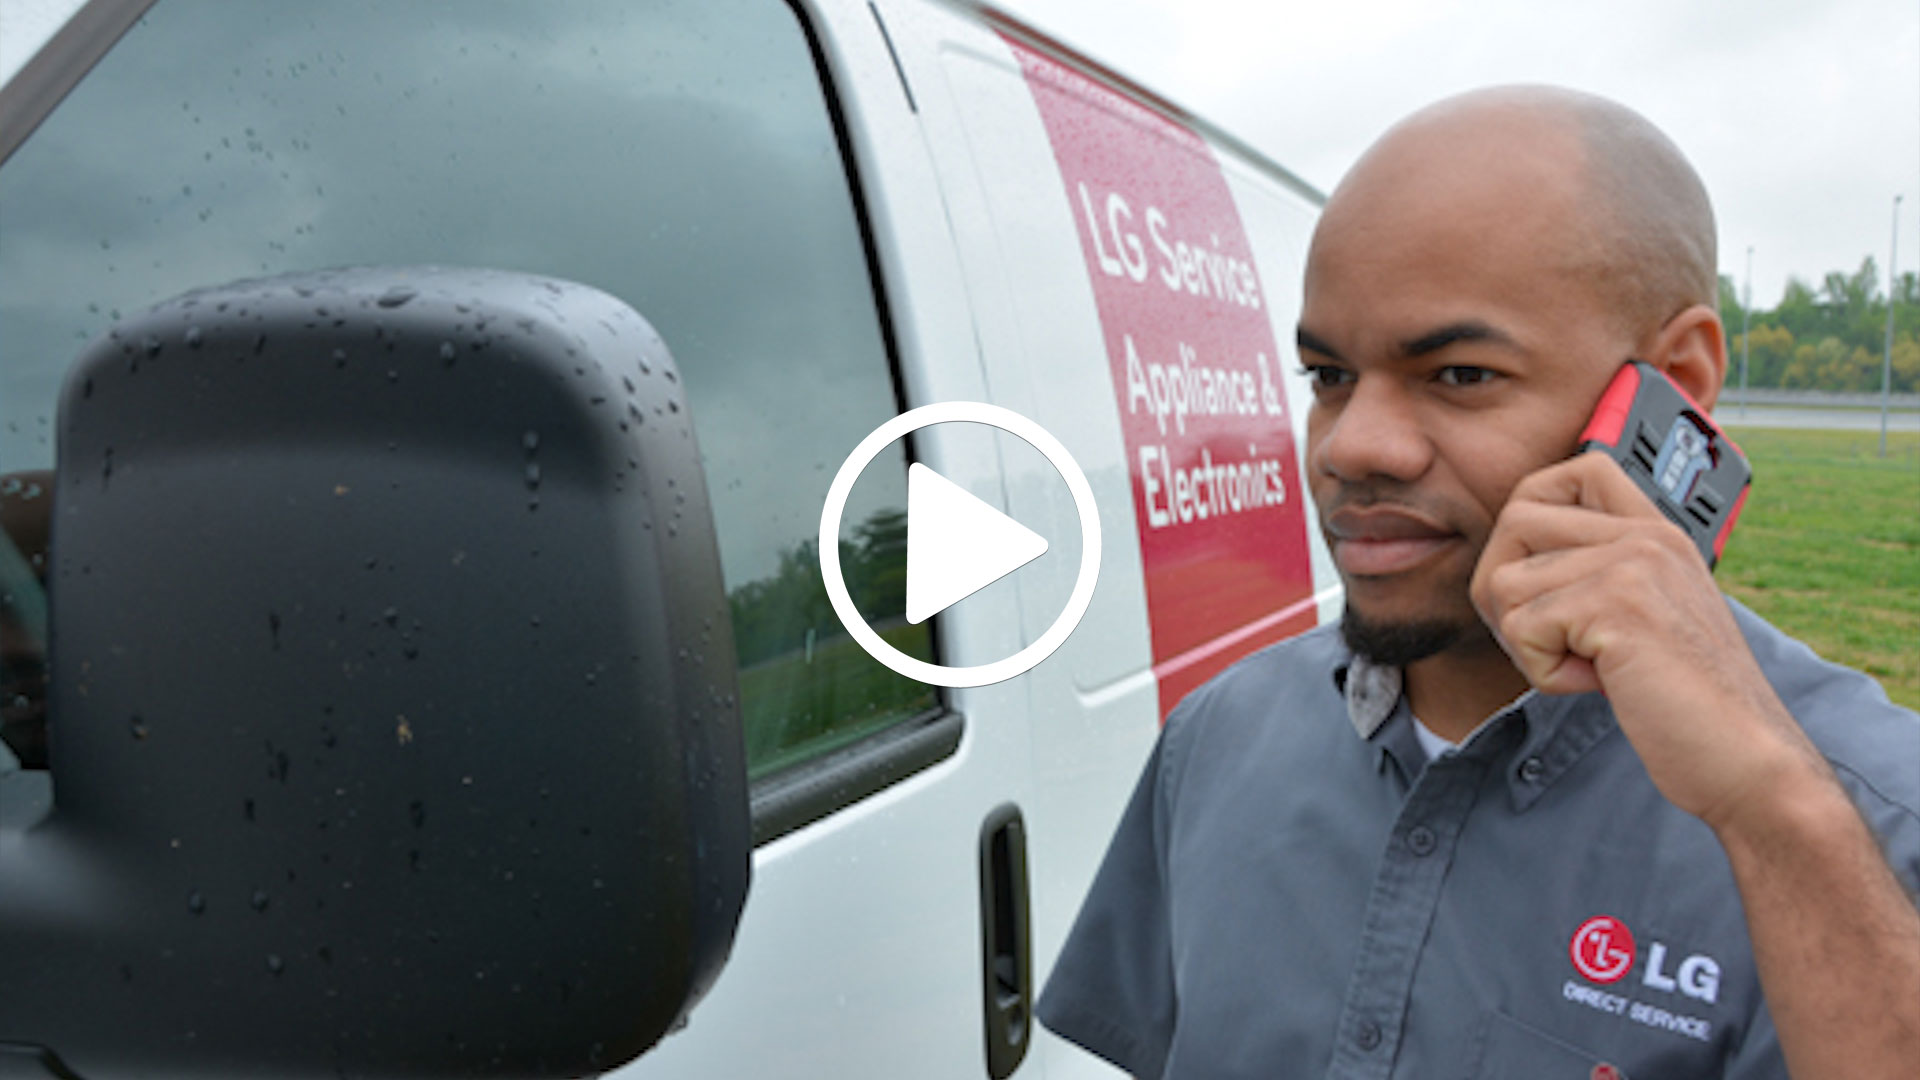 Watch our careers video for available job opening Field Service Technician in Santa Rosa, CA